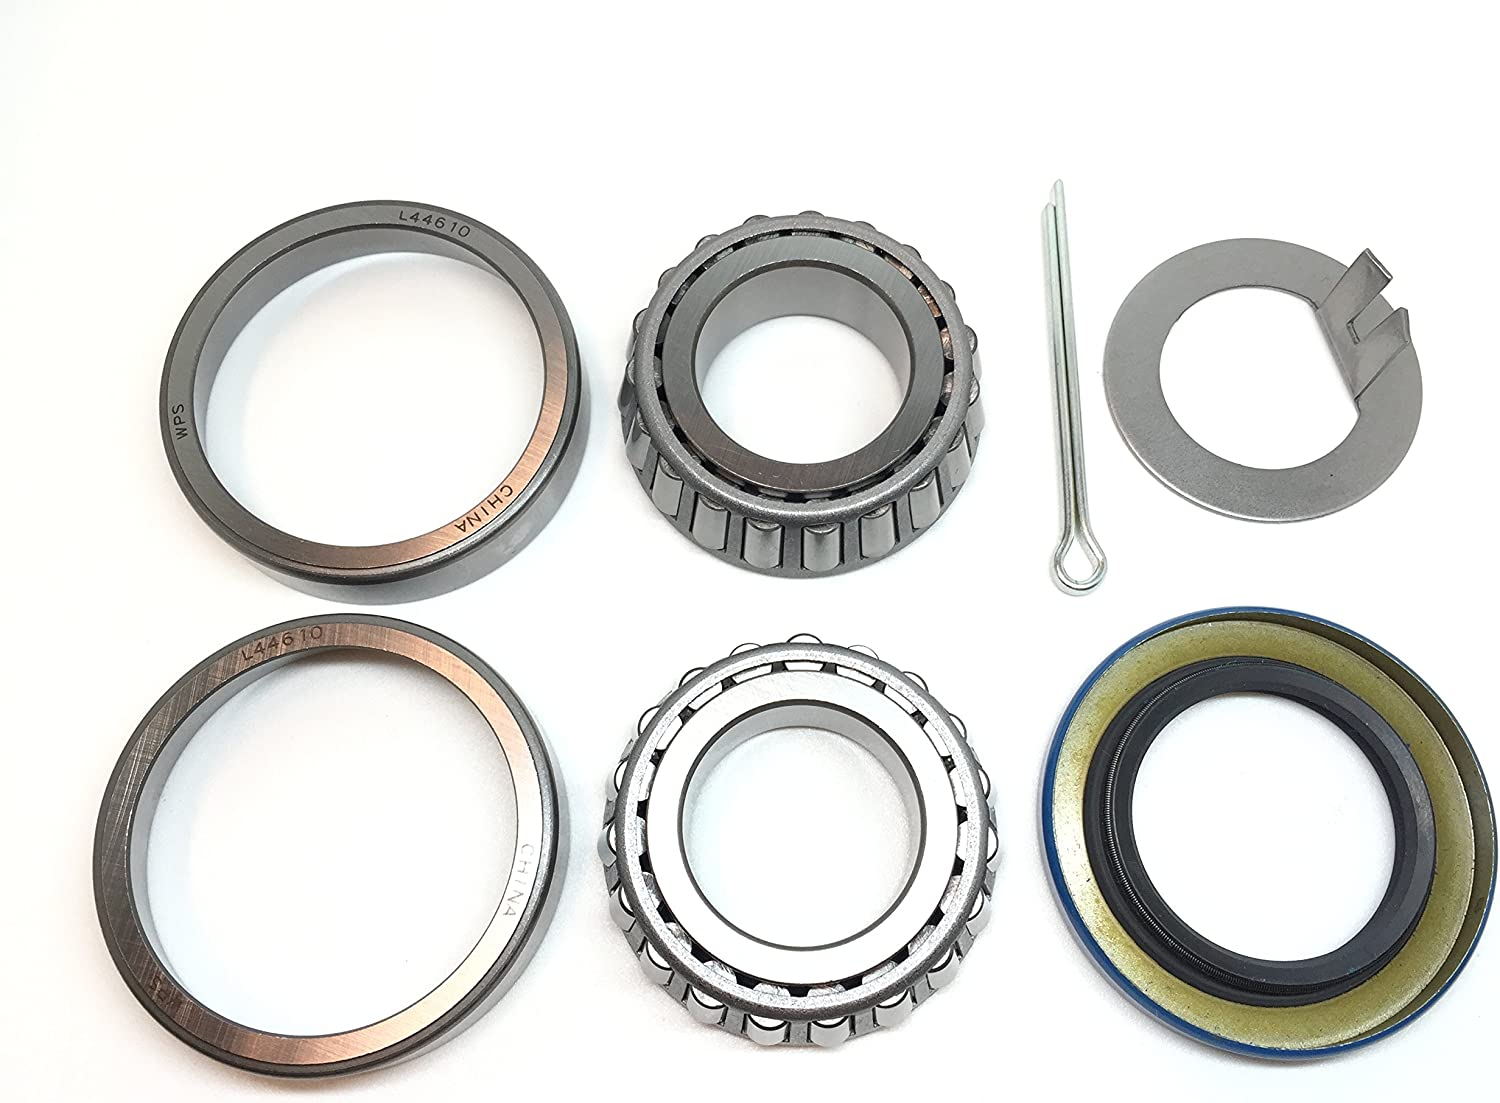 WPS Trailer Axle Hub Wheel Direct stock discount Bearing L44643 Translated Seal L44610 Grease Kit